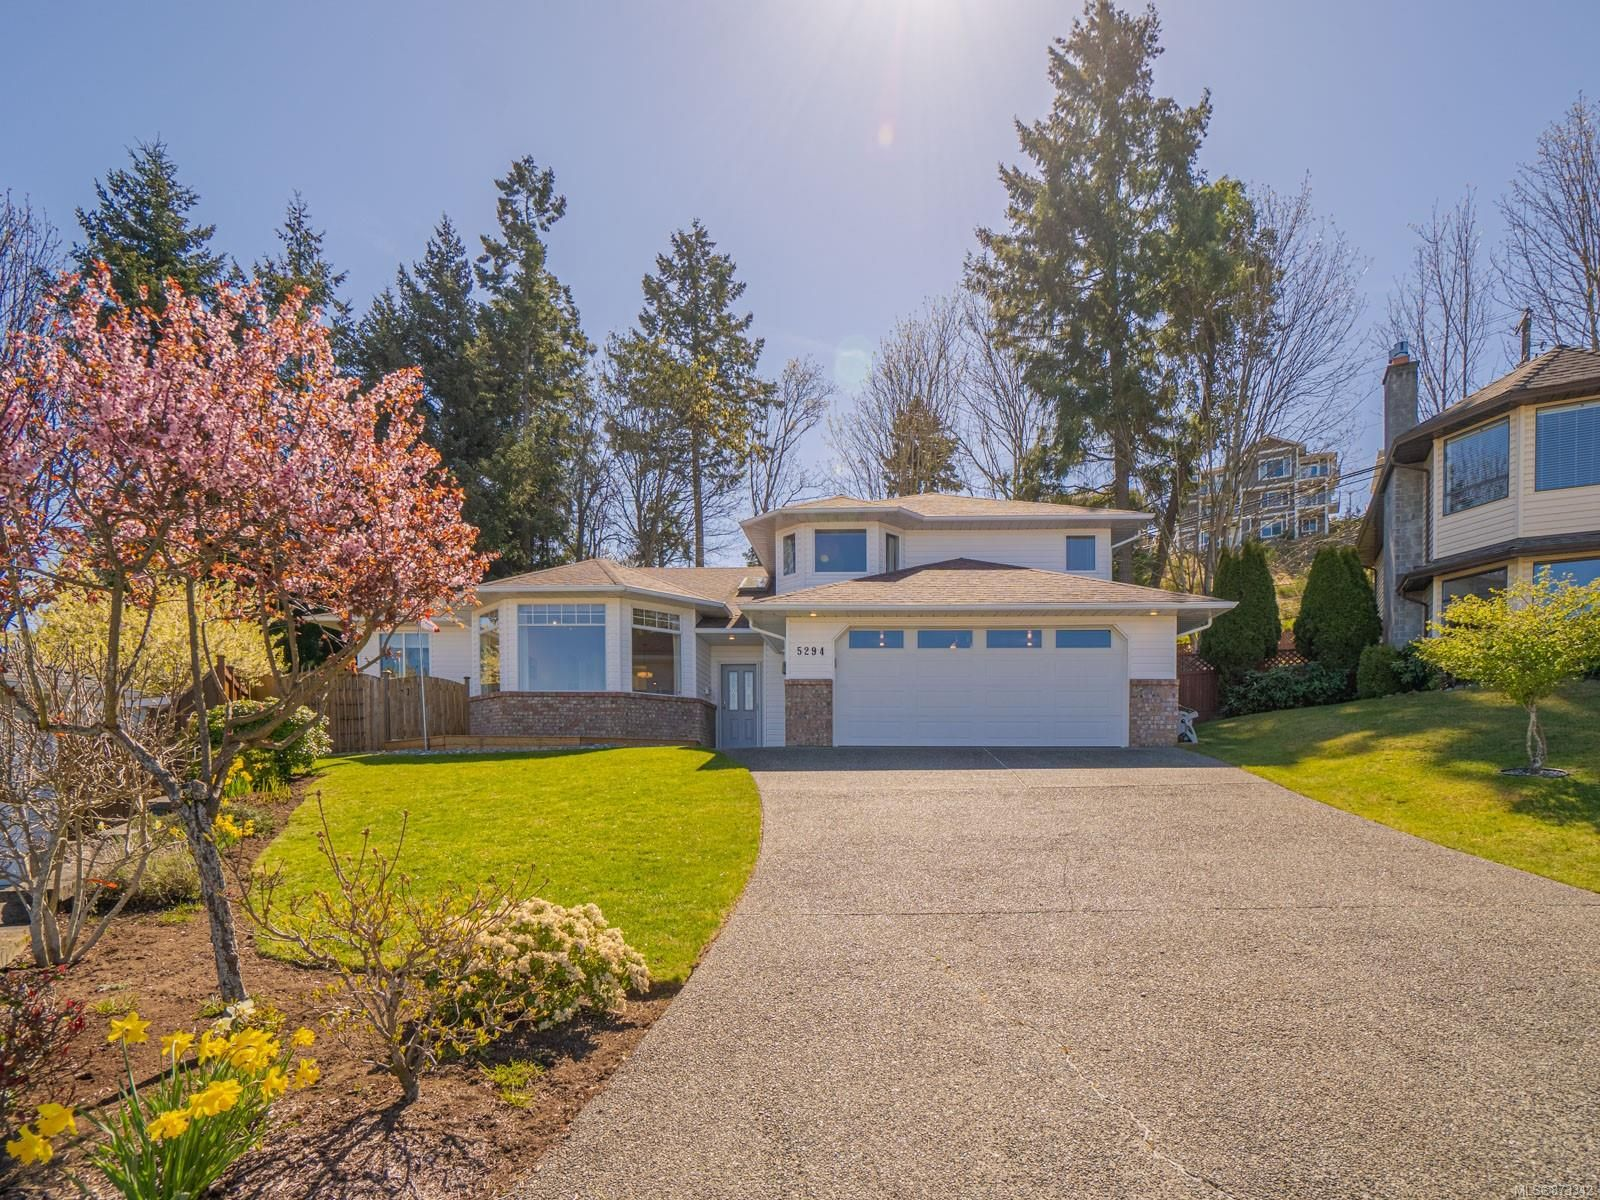 Main Photo: 5294 Catalina Dr in : Na North Nanaimo House for sale (Nanaimo)  : MLS®# 873342